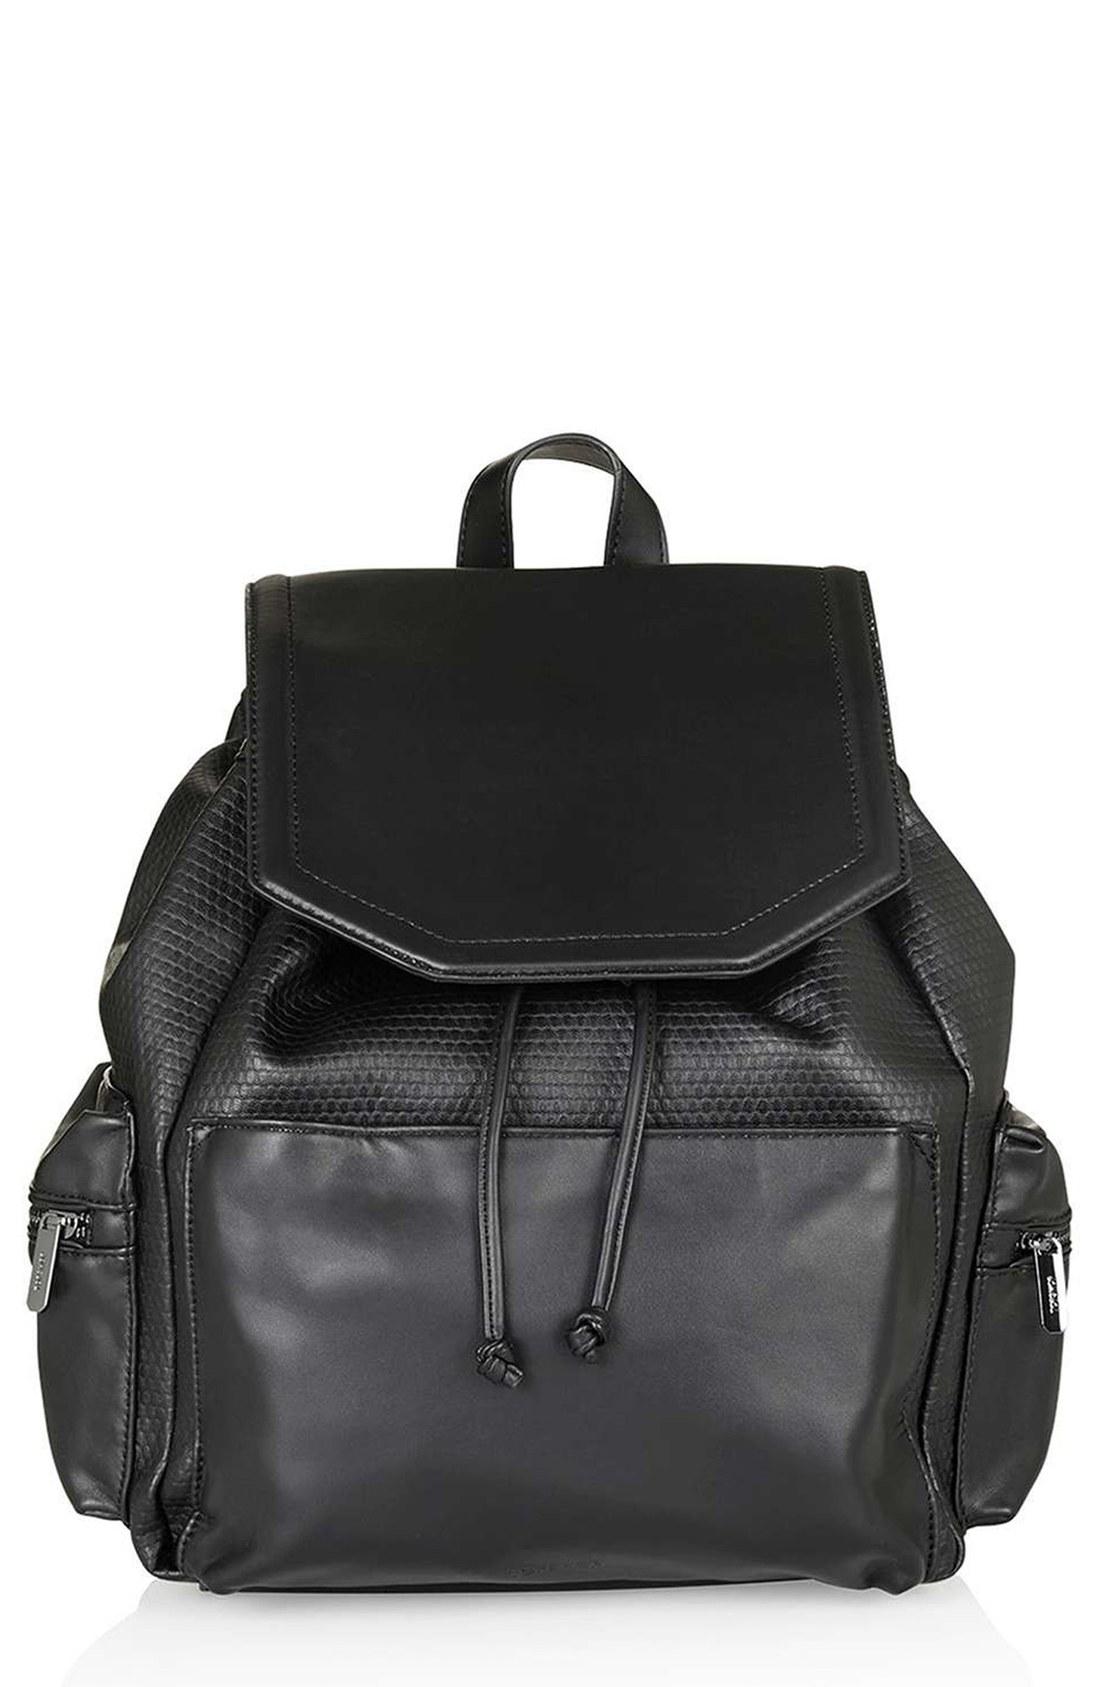 Vegan Leather Backpack rDBIzqKD